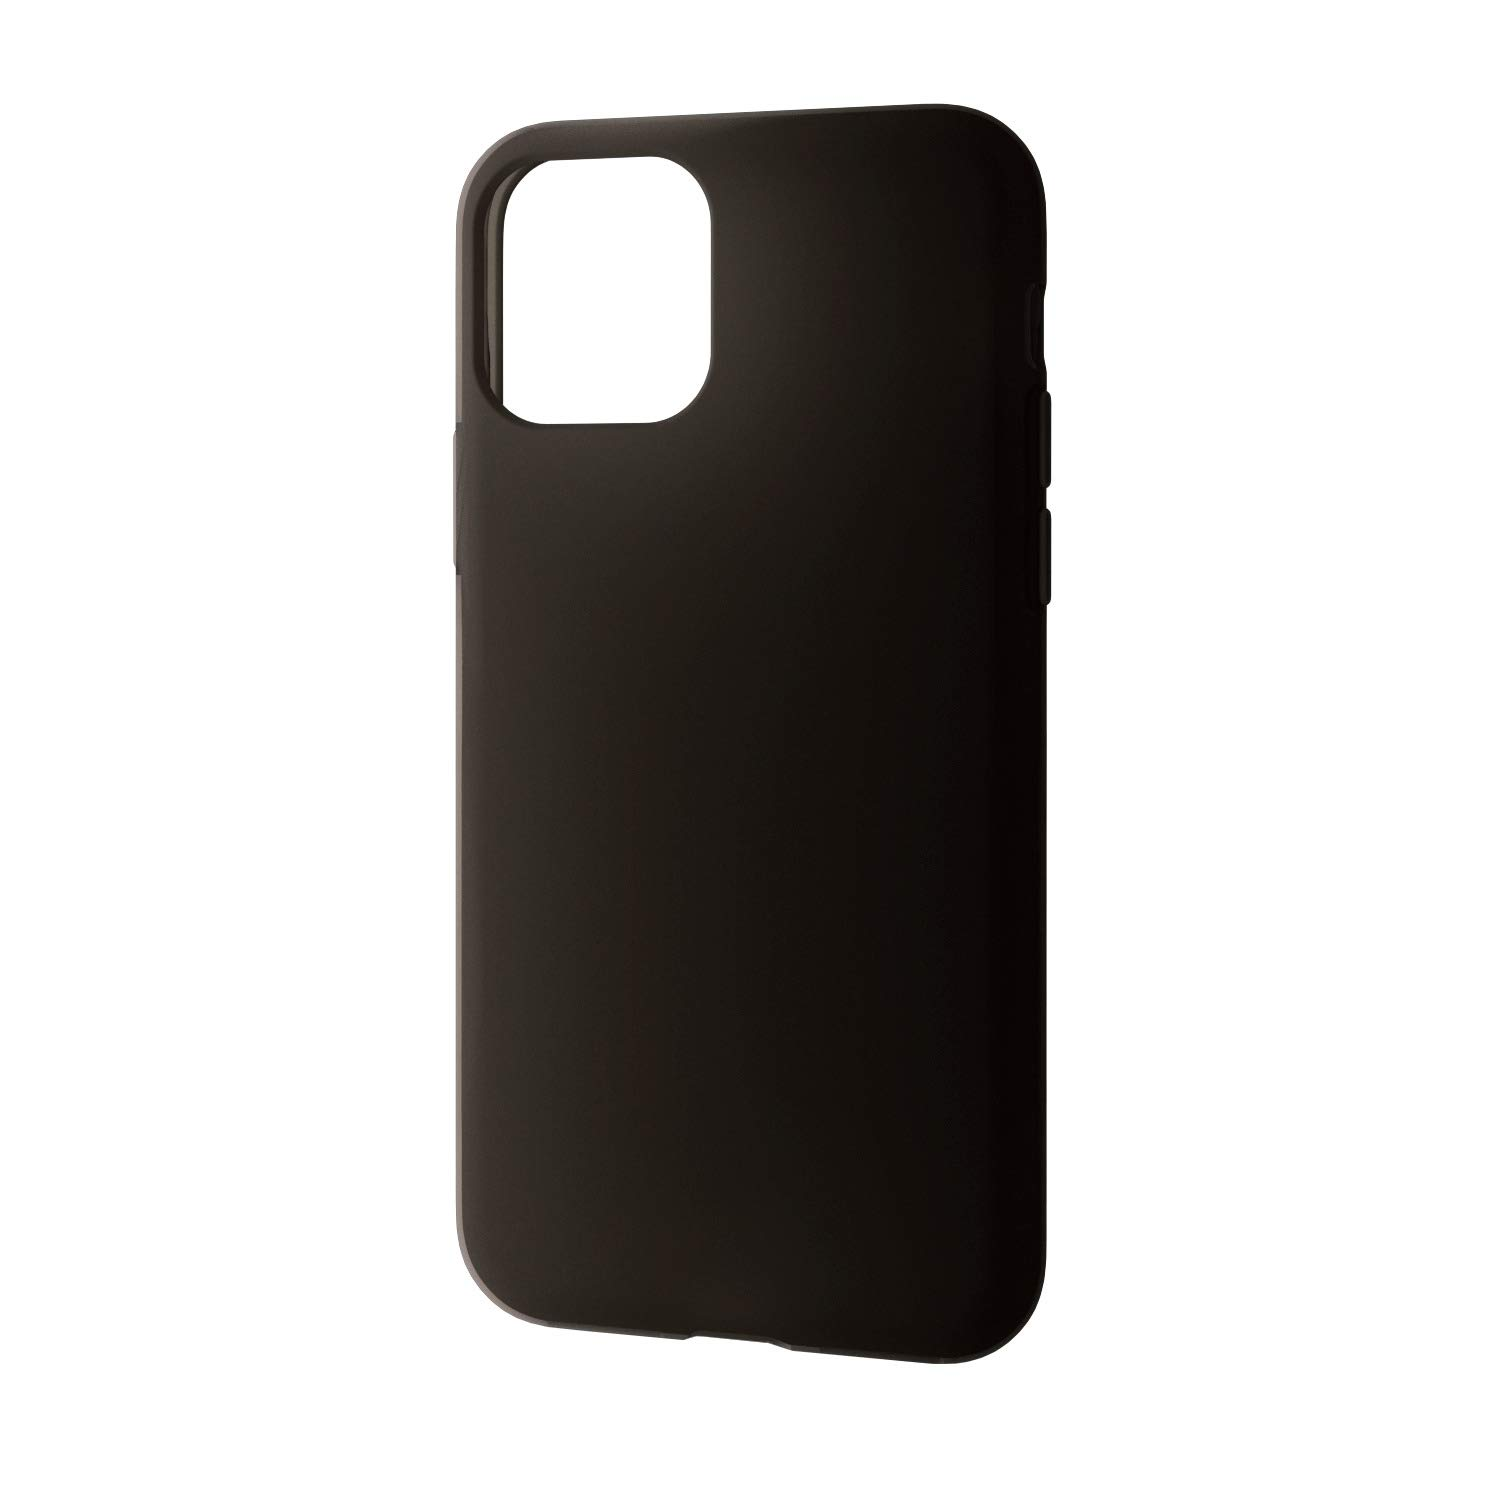 ELECOM-Japan Brand-Smartphone Soft Silicon Case Compatible with iPhone 11 Pro Black PM-A19BSCBK